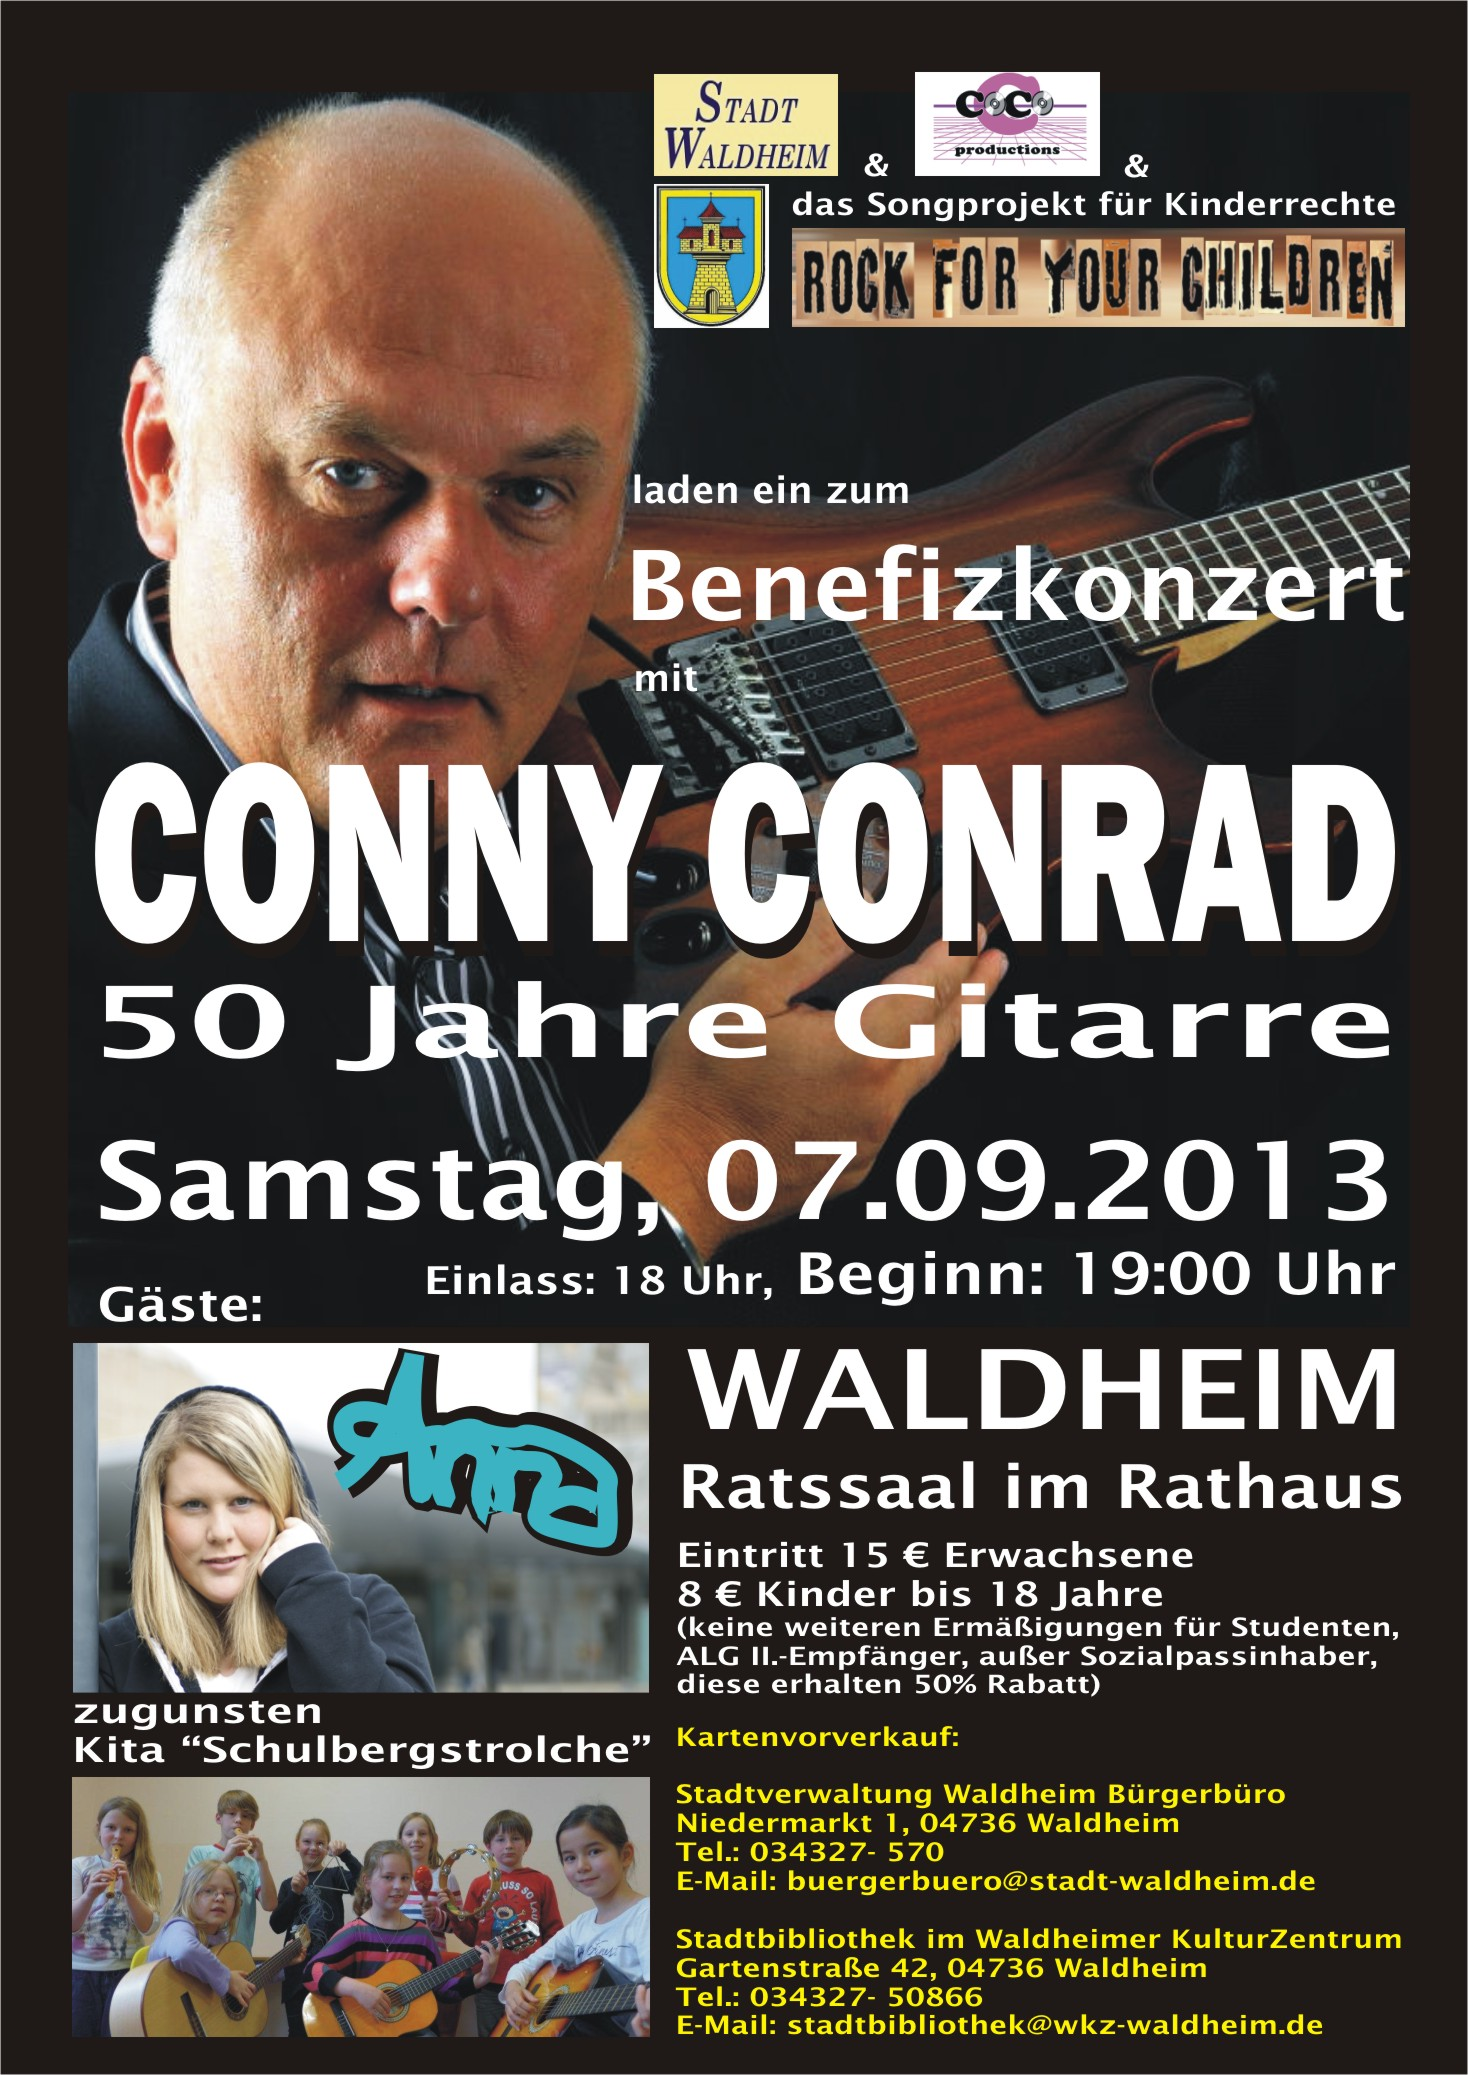 648050e24f4 CONNY CONRAD LIVE am 07.09.2013 in WALDHEIM | Rock For Your Children